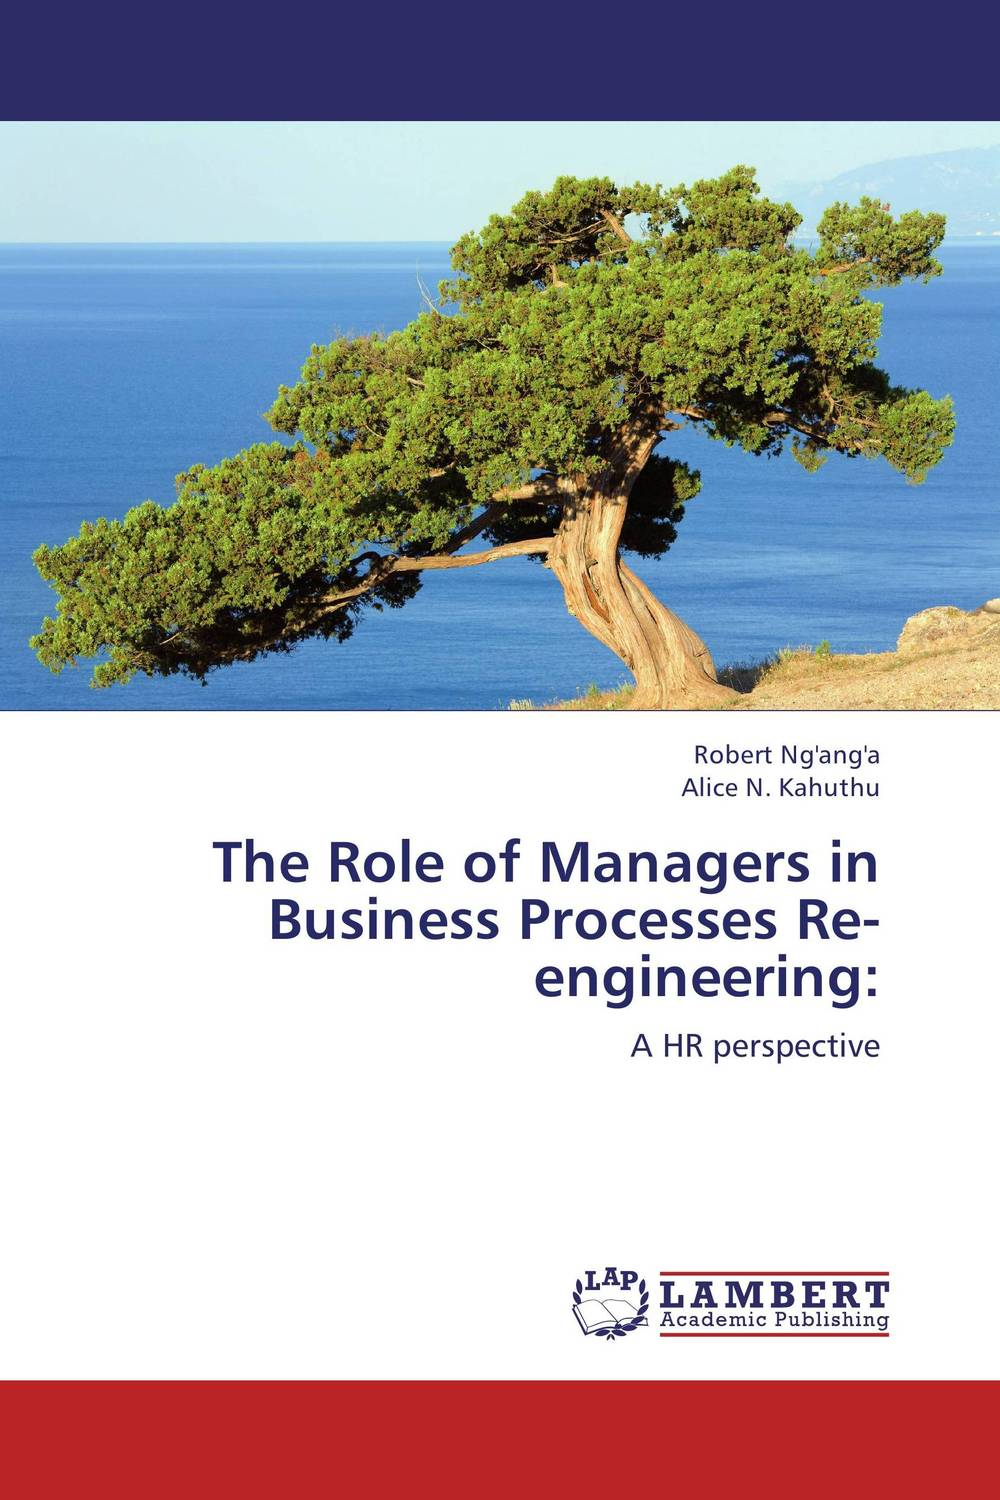 The Role of Managers in Business Processes Re-engineering: beers the role of immunological factors in viral and onc ogenic processes